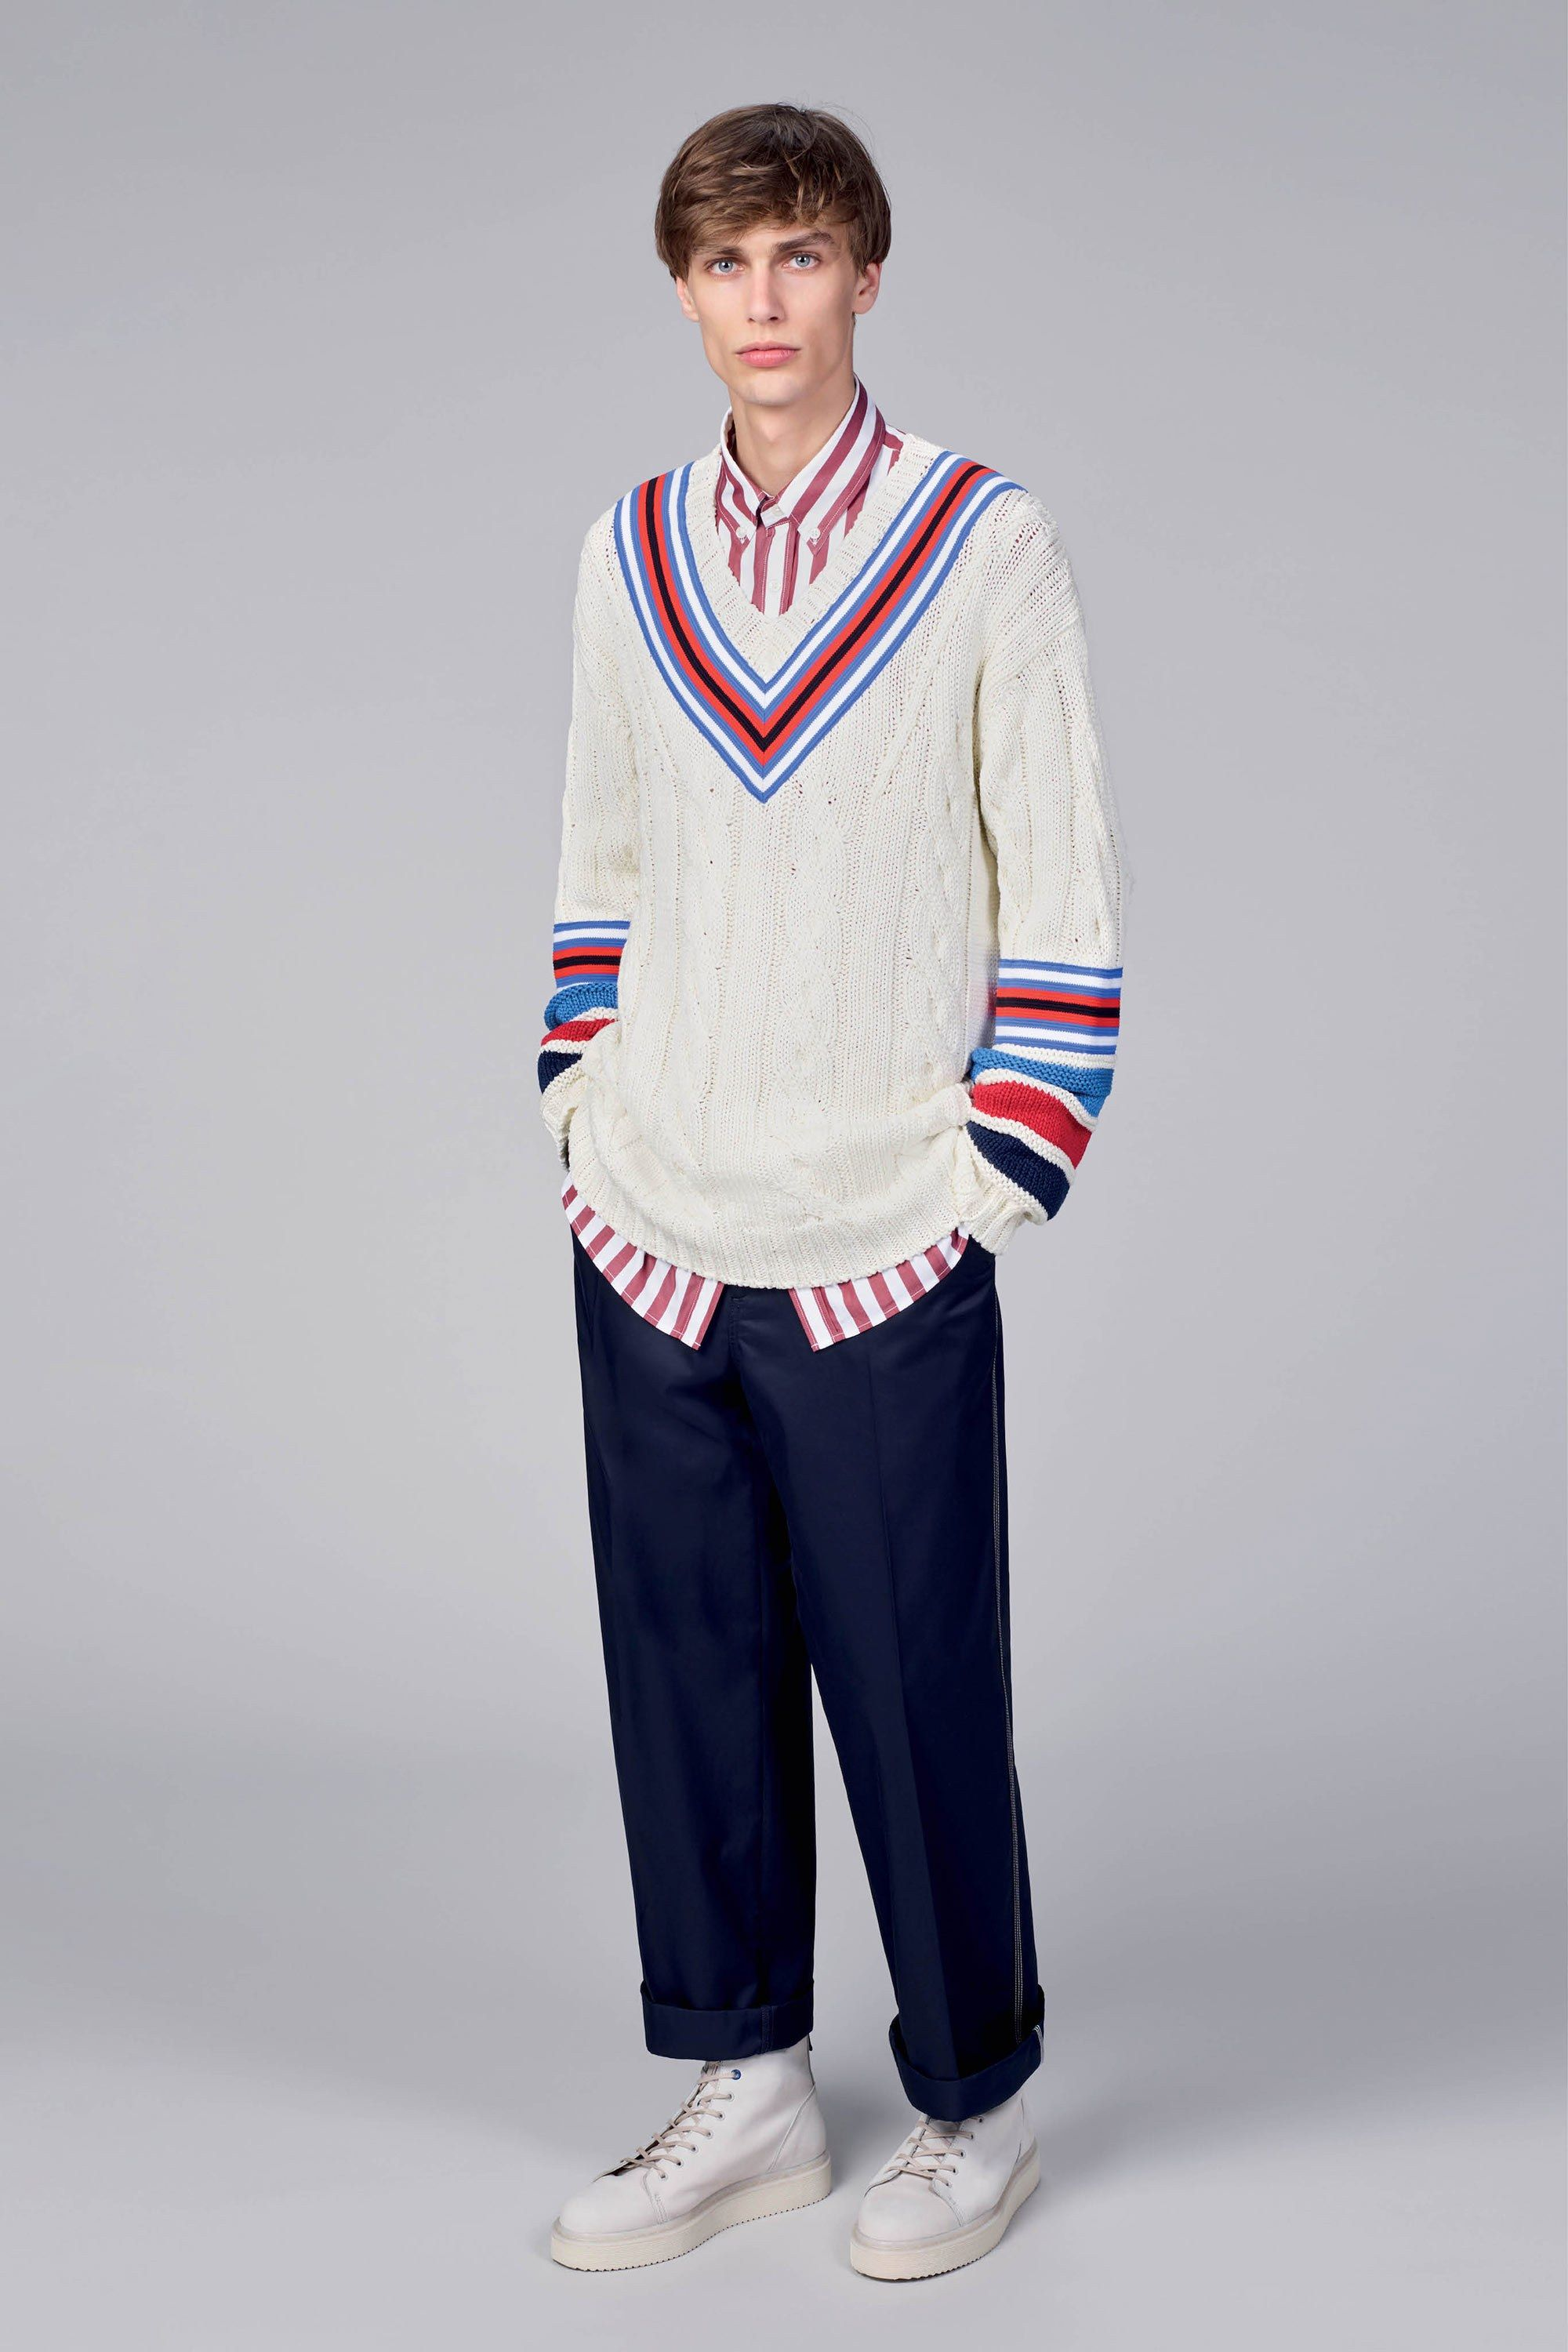 tommy hilfiger spring 2018 menswear fashion show in 2020